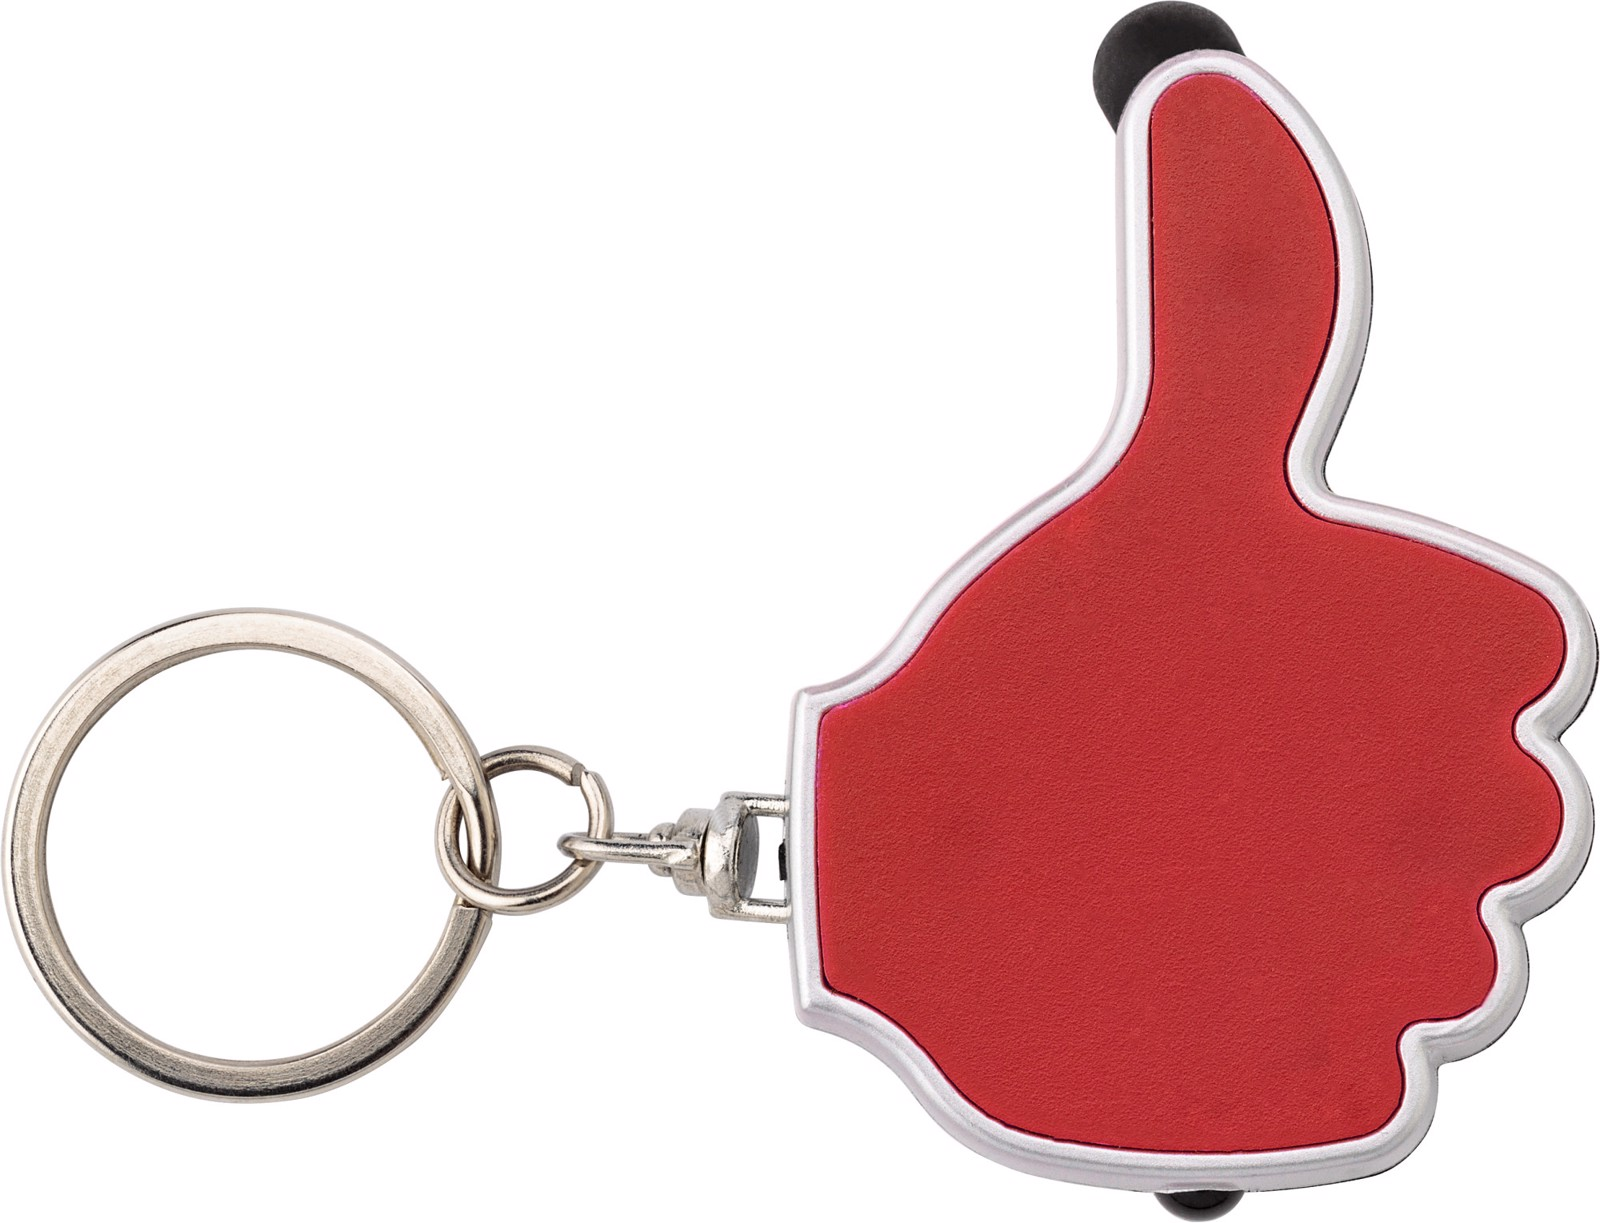 ABS 2-in-1 key holder - Red